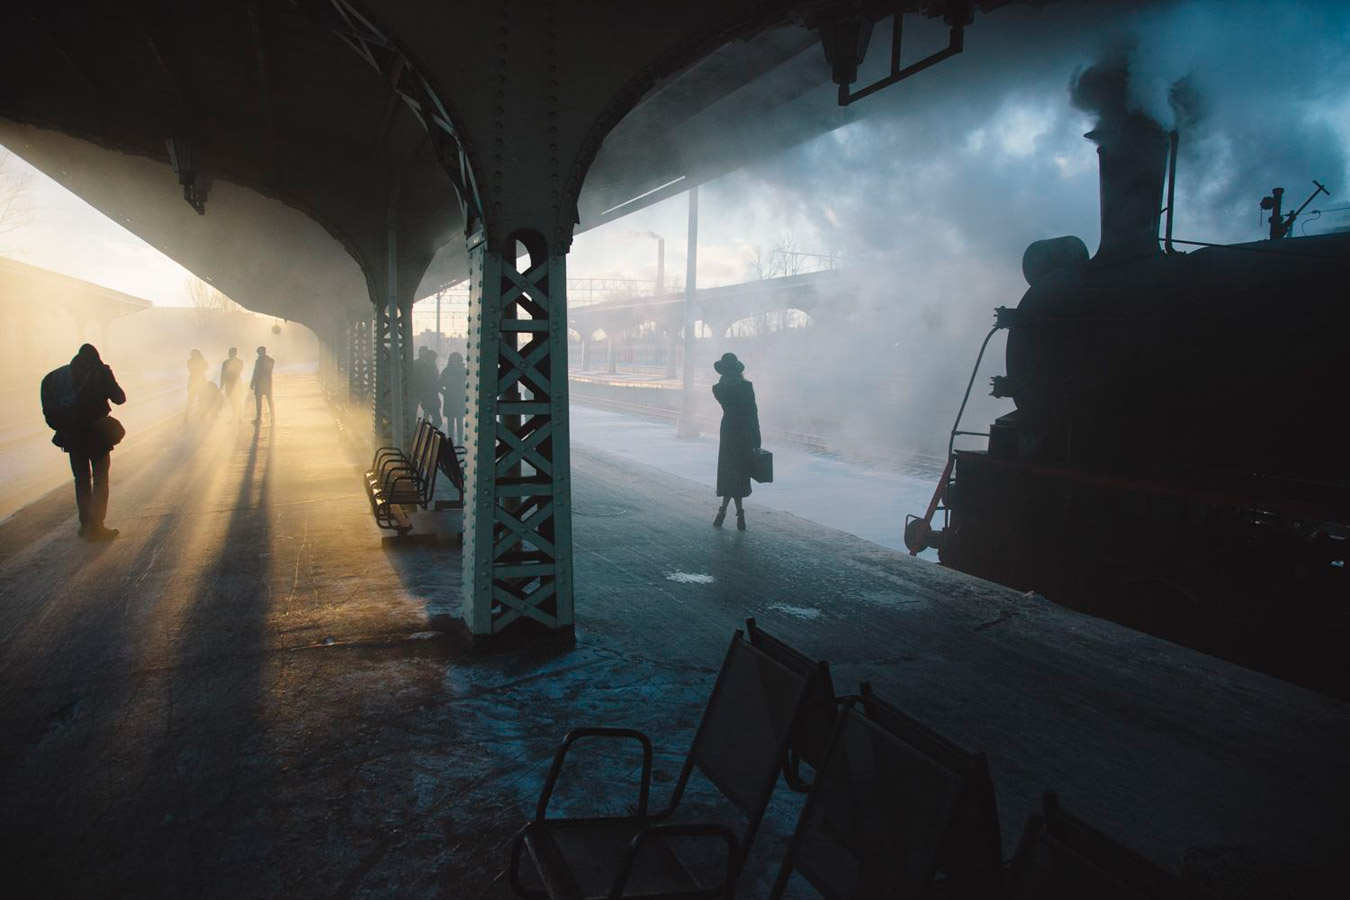 Two times one train station, © Nikolay Schegolev, Weather Photographer of the Year